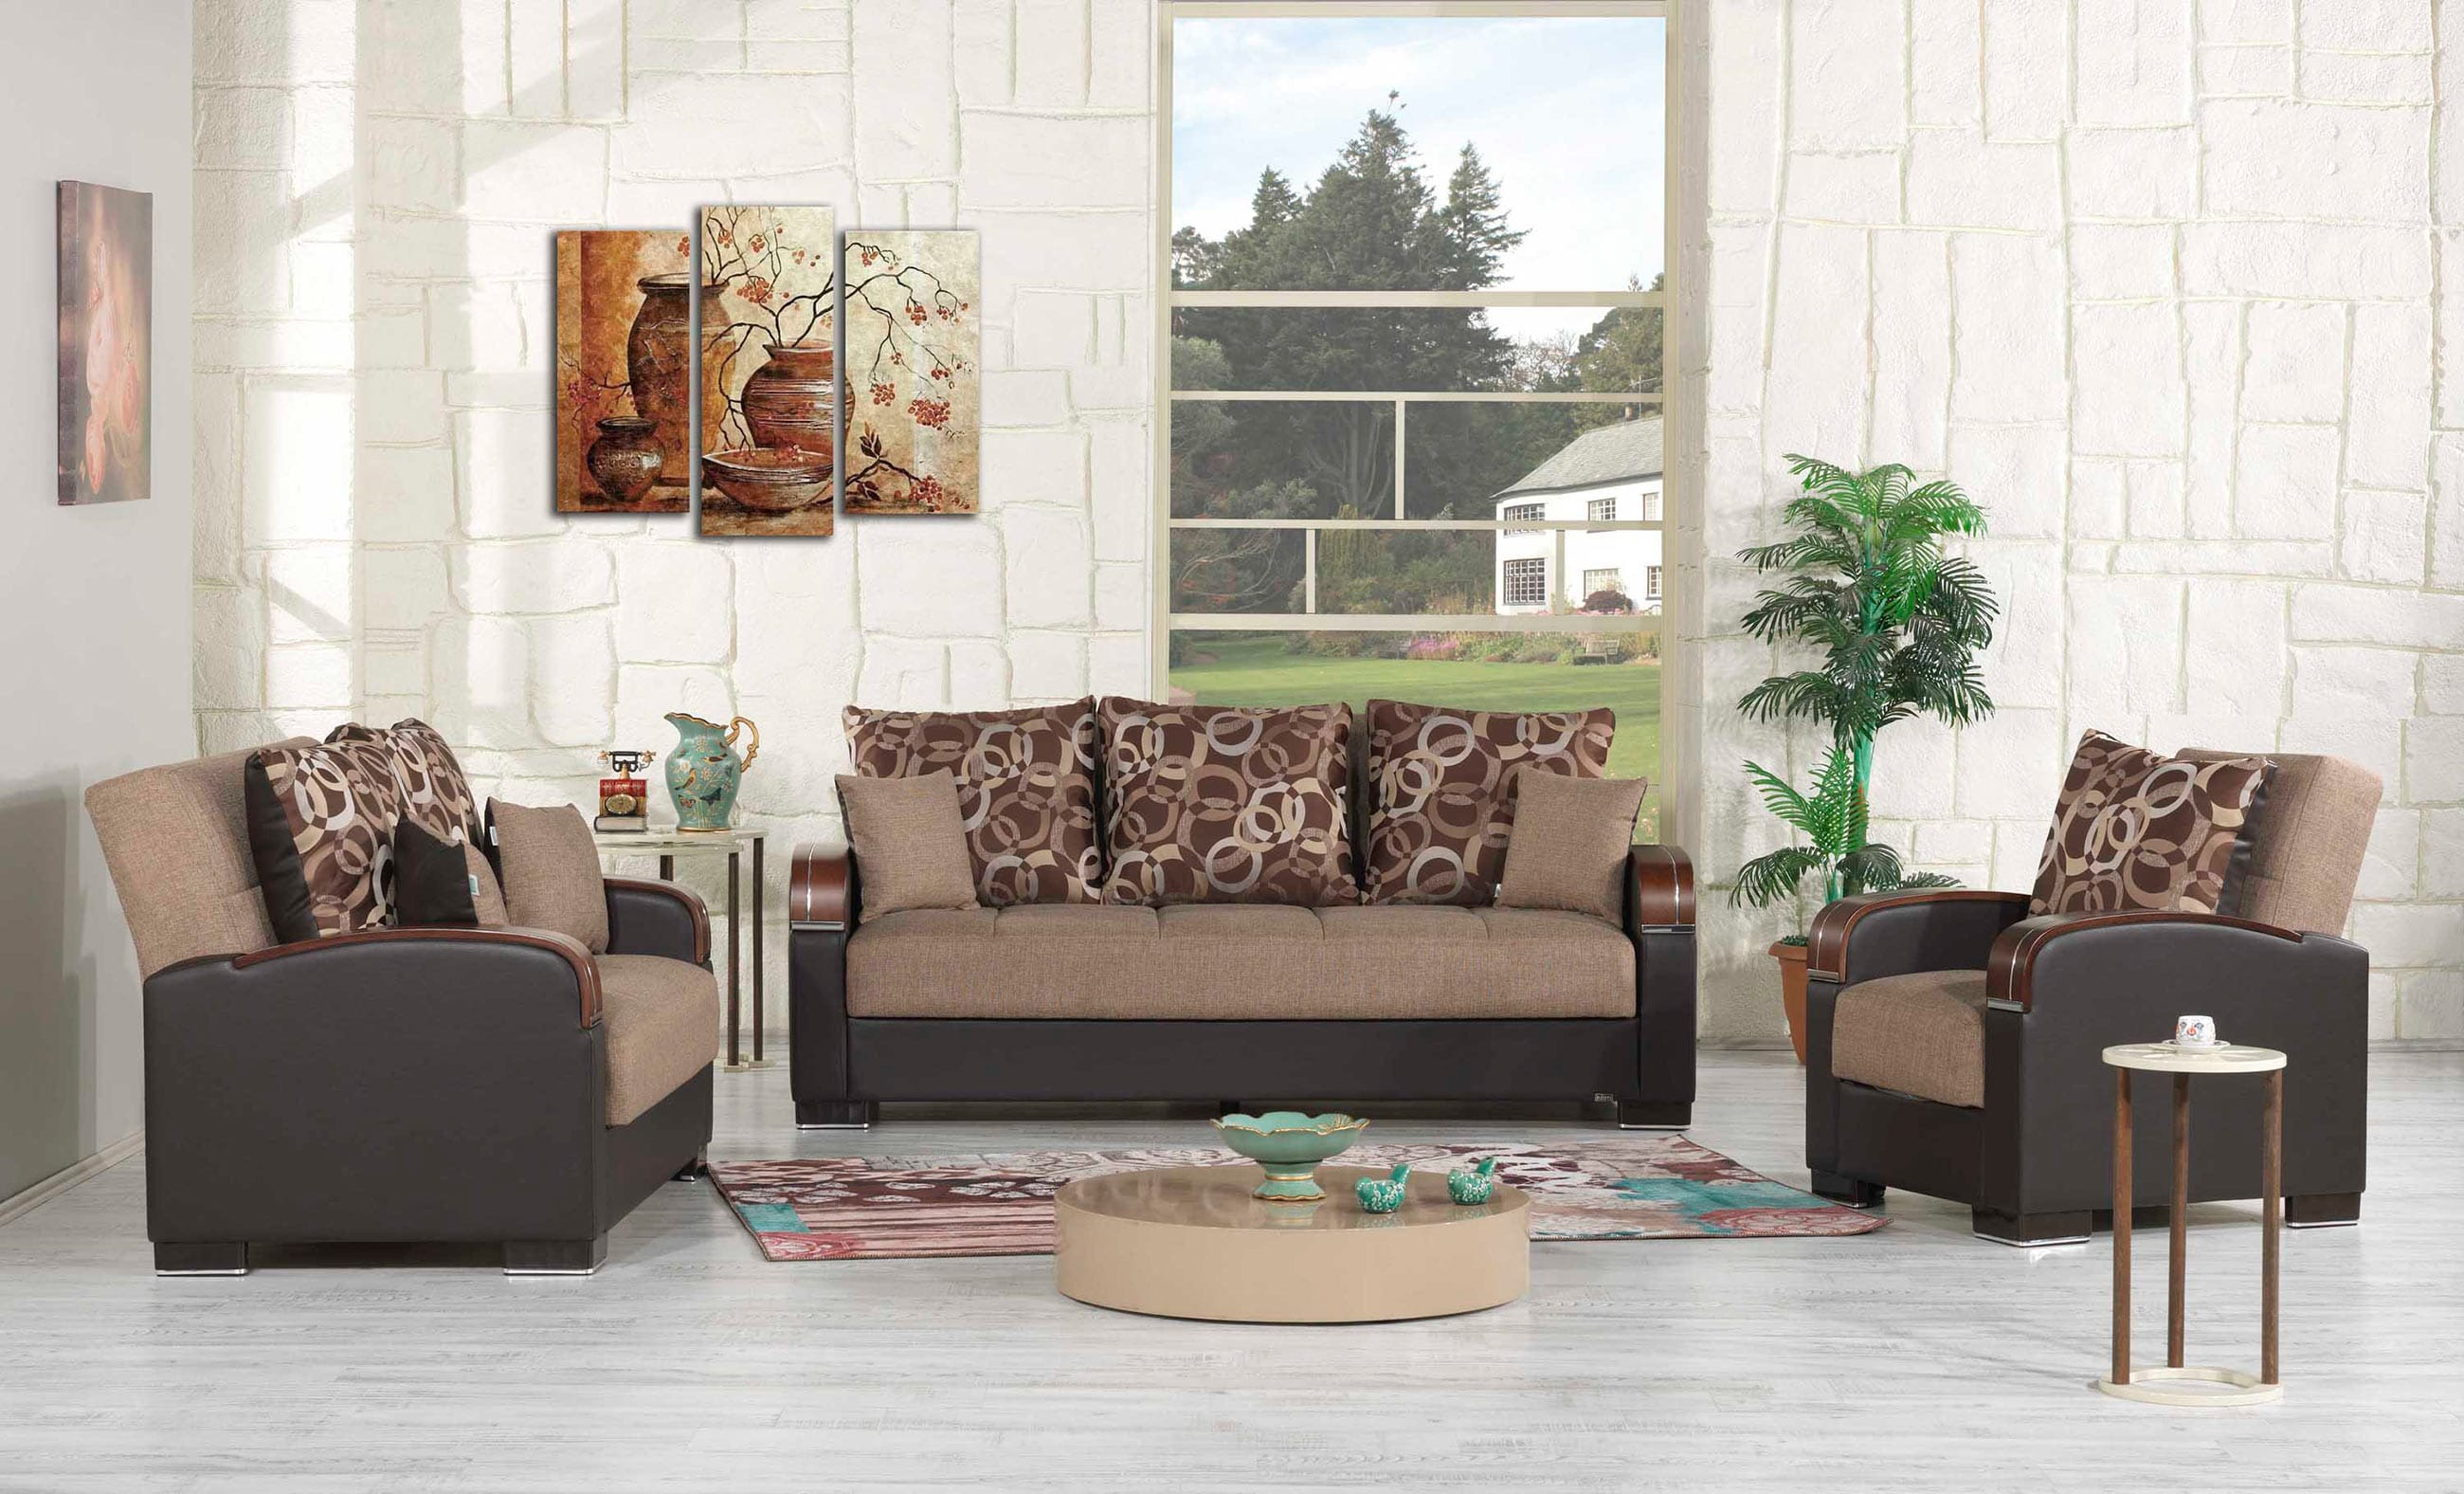 couch loveseat furniture ceni century pyrite mid brown product scandinavian modern article loveseats and gray